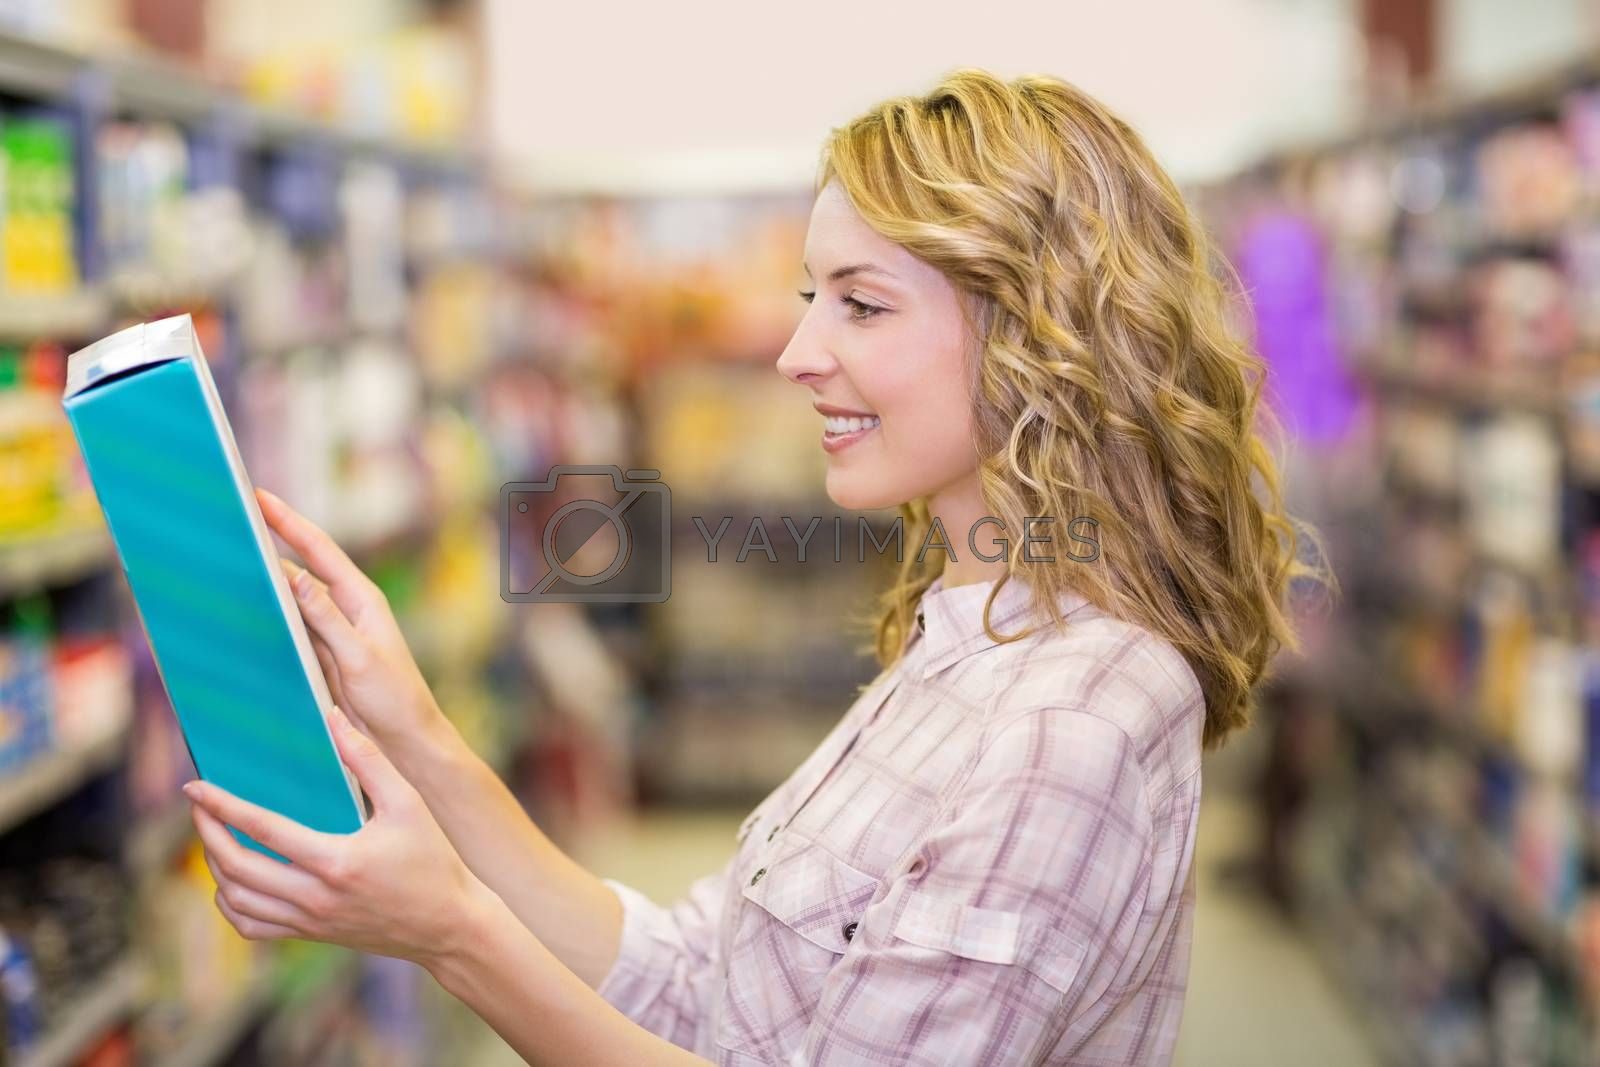 Royalty free image of Side view of smiling pretty blonde woman reading a book  by Wavebreakmedia